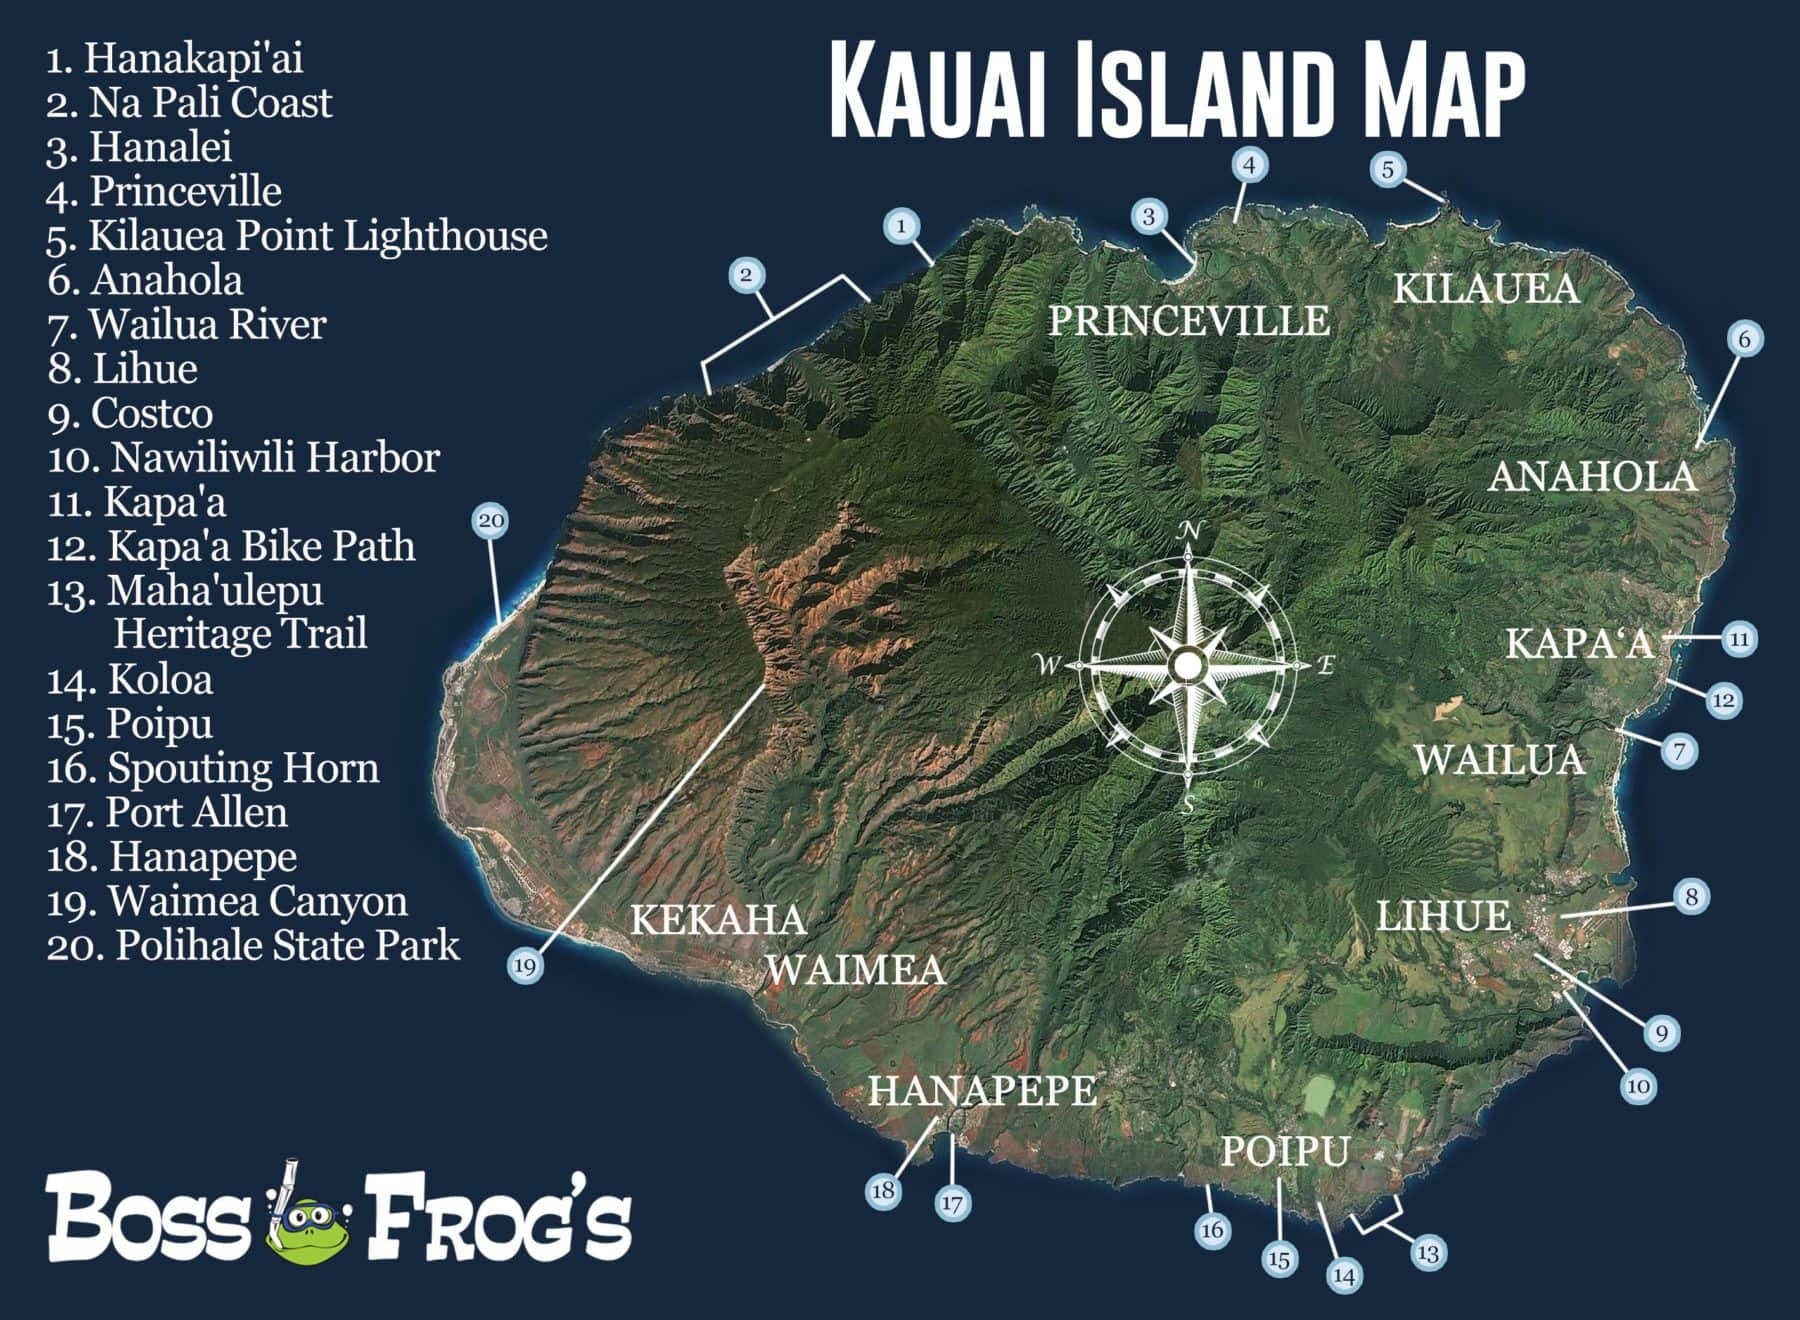 taylor camp kauai map Kauai Island Map Na Pali Coast Hanapepe Poipu More taylor camp kauai map